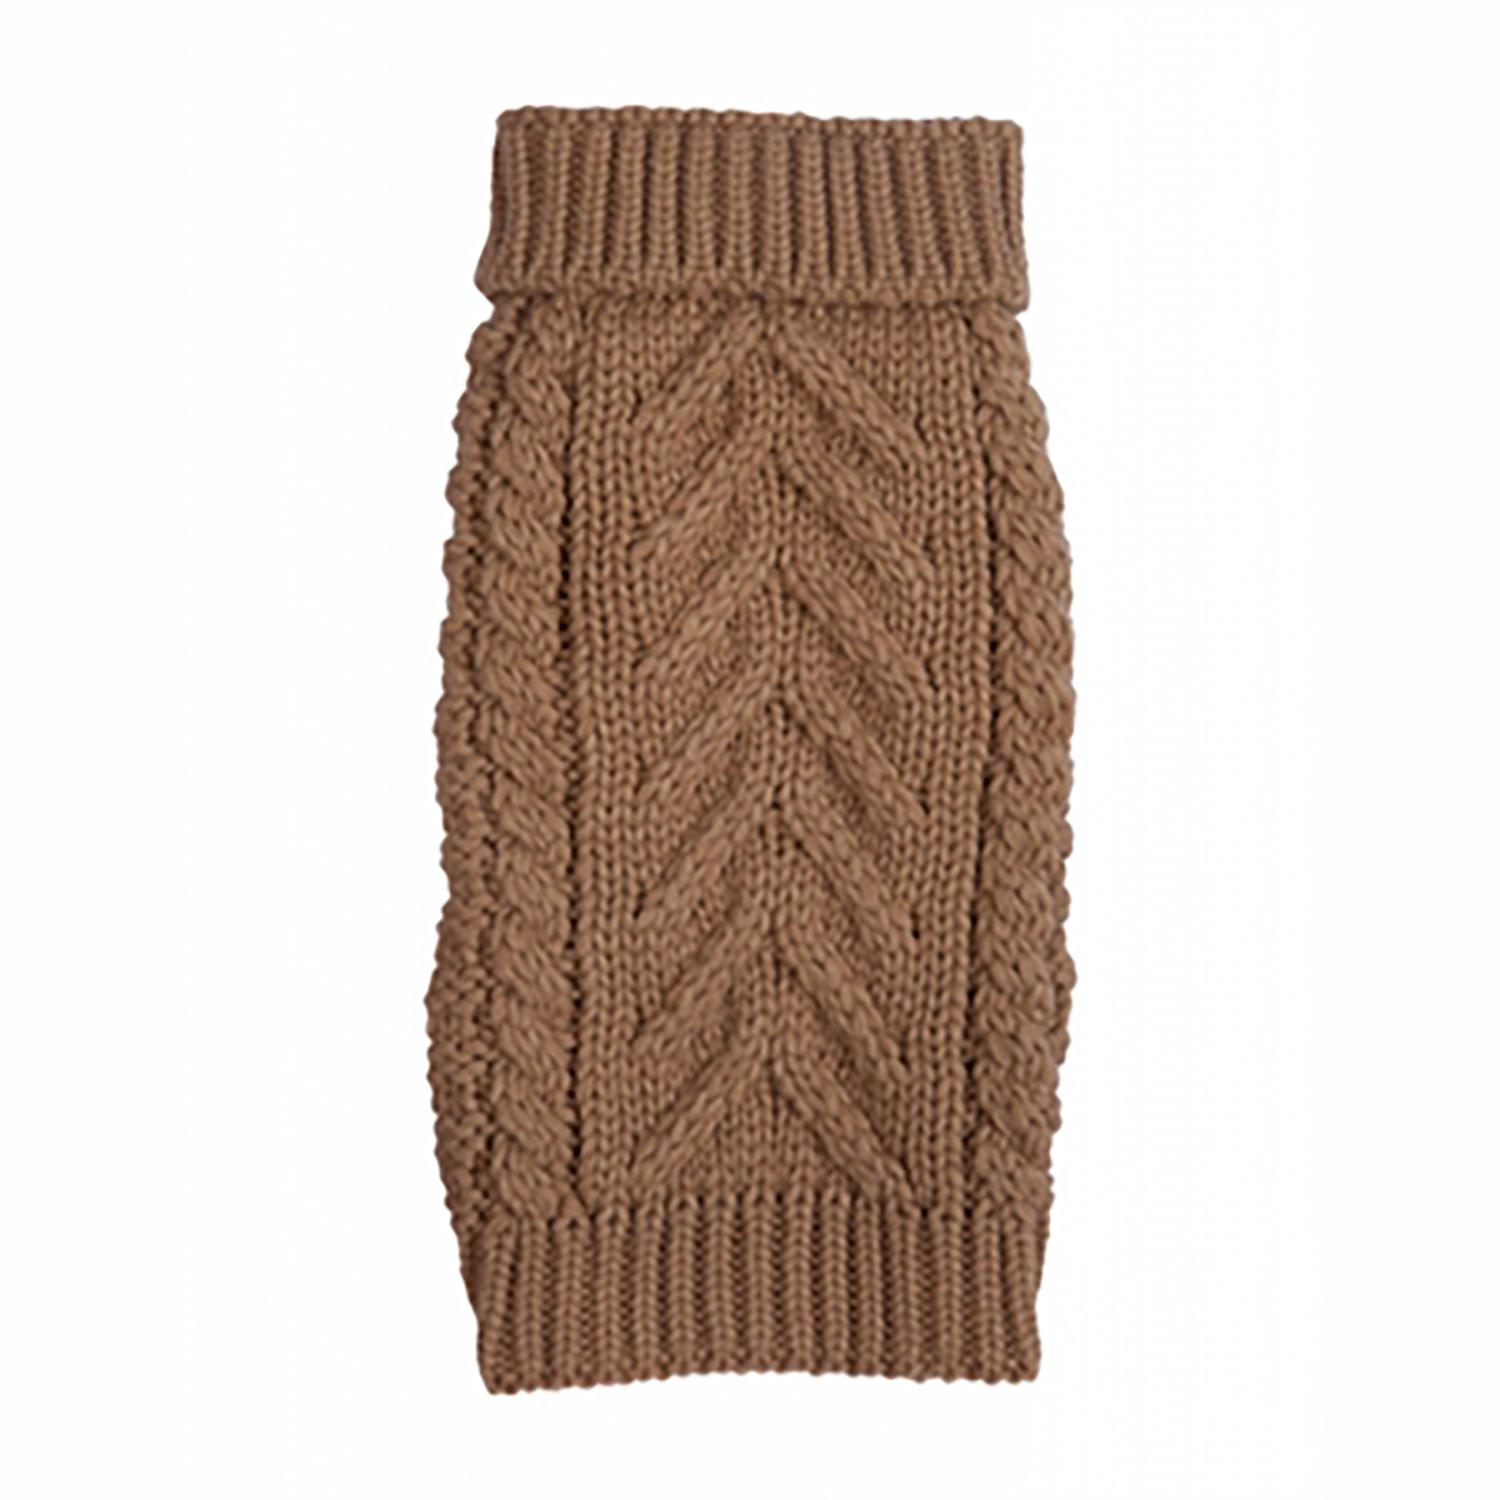 Chunky Turtleneck Dog Sweater - Camel